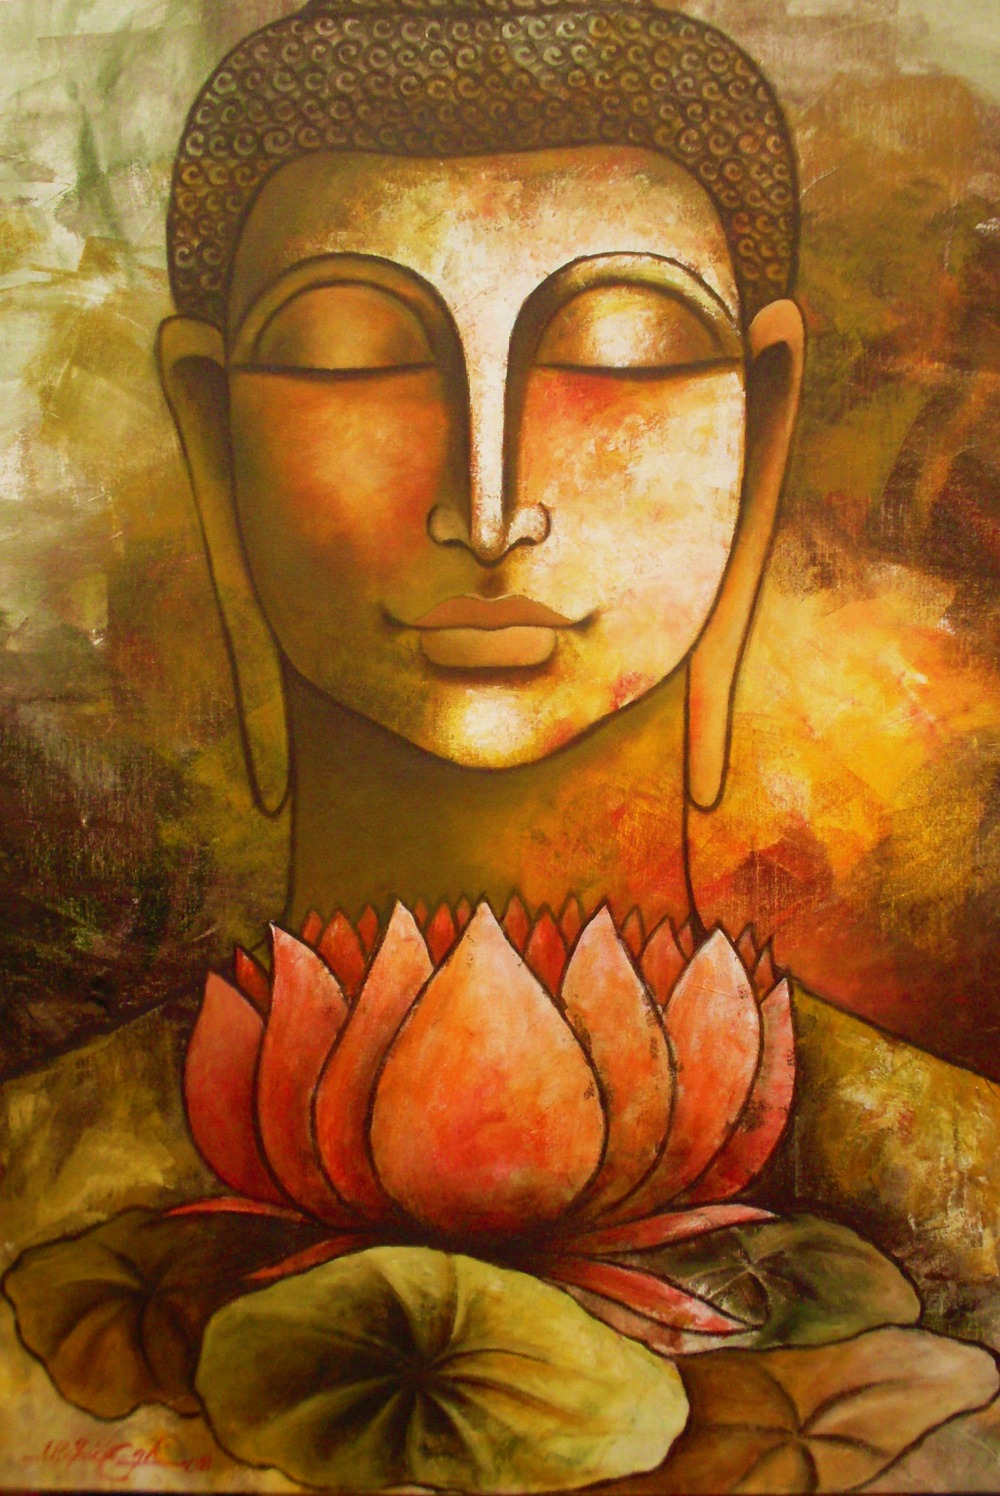 DH Art Classical Buddha Oil Painting Solemn Buddhism Wall Canvas Art <font><b>Asian</b></font> Religion Ancient Picture For <font><b>Home</b></font> <font><b>Decoration</b></font>